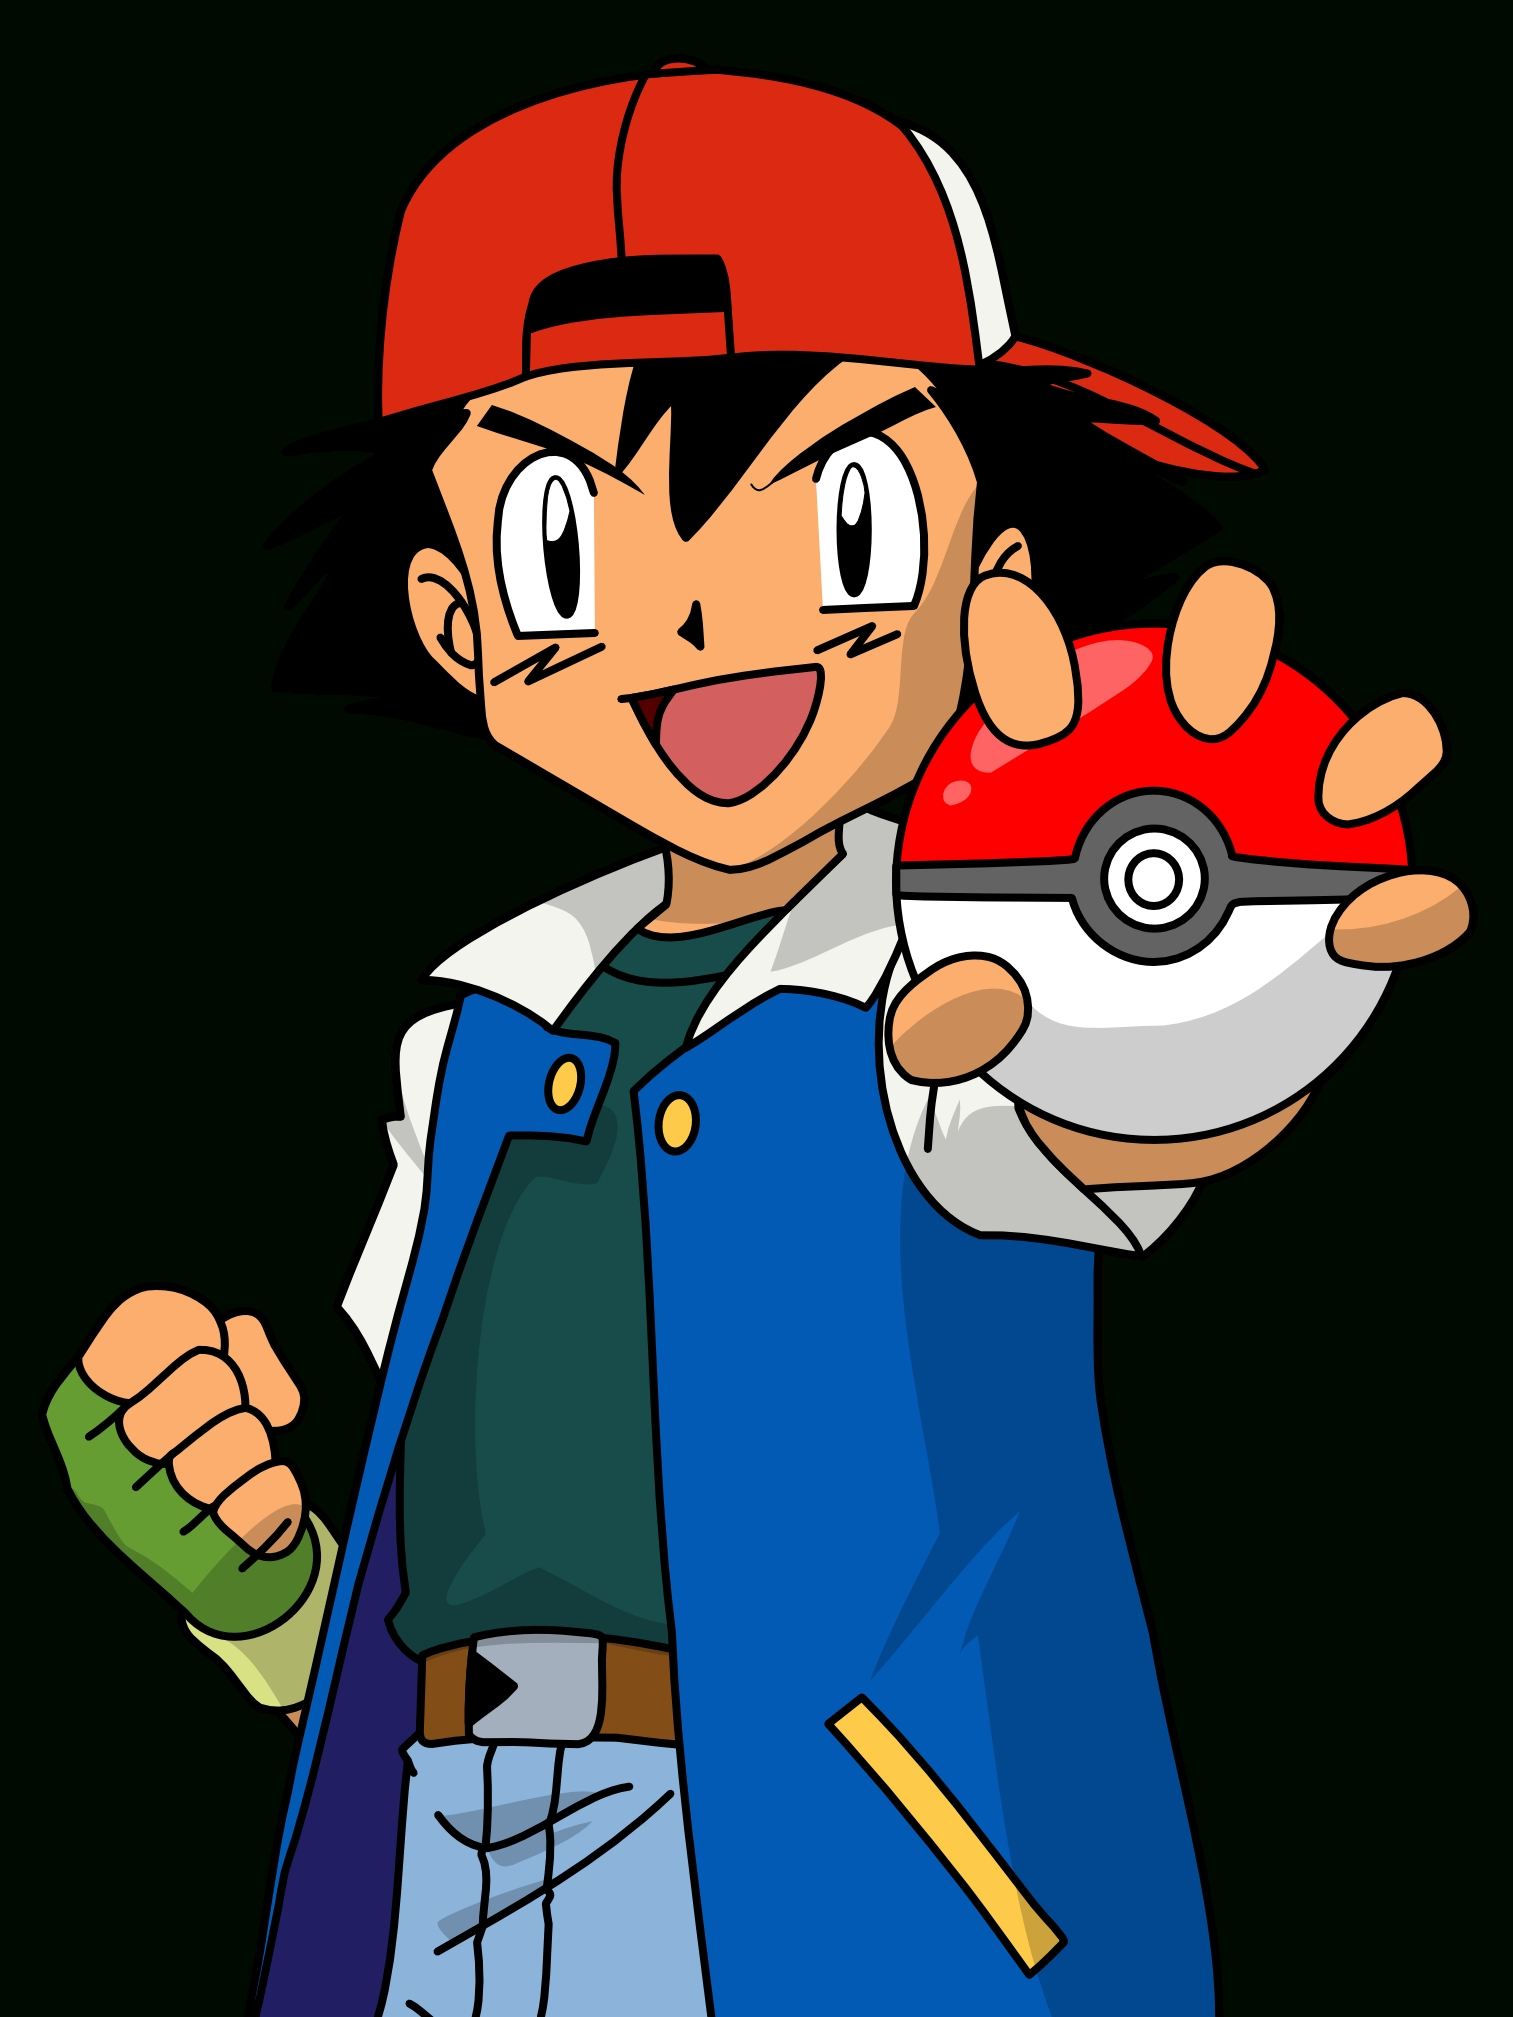 10 Top Pictures Of Ash From Pokemon FULL HD 1080p For PC Background